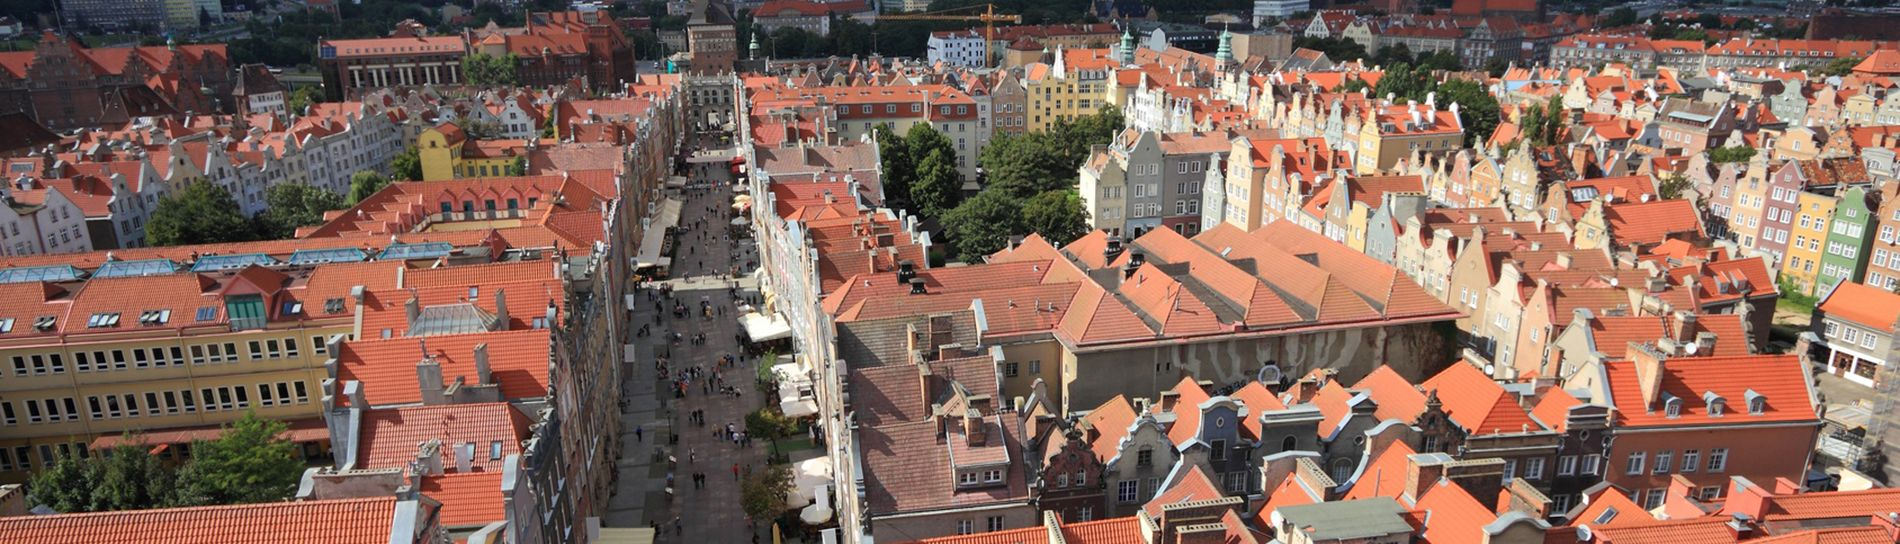 Poland - Gdansk Old Town in Pomerania region. Old town architecture aerial view.